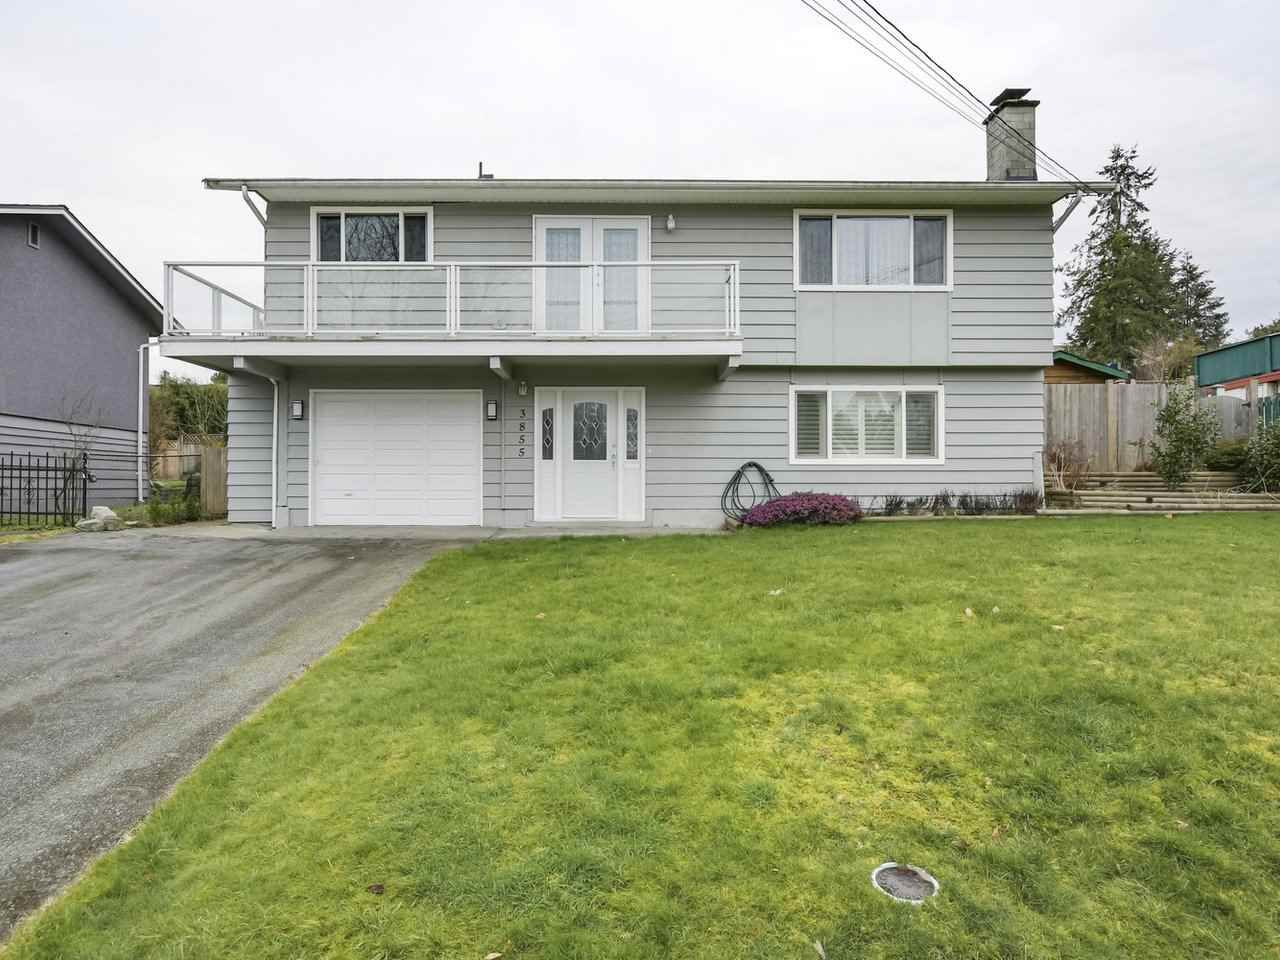 Main Photo: 3855 WELLINGTON Street in Port Coquitlam: Oxford Heights House for sale : MLS®# R2337257